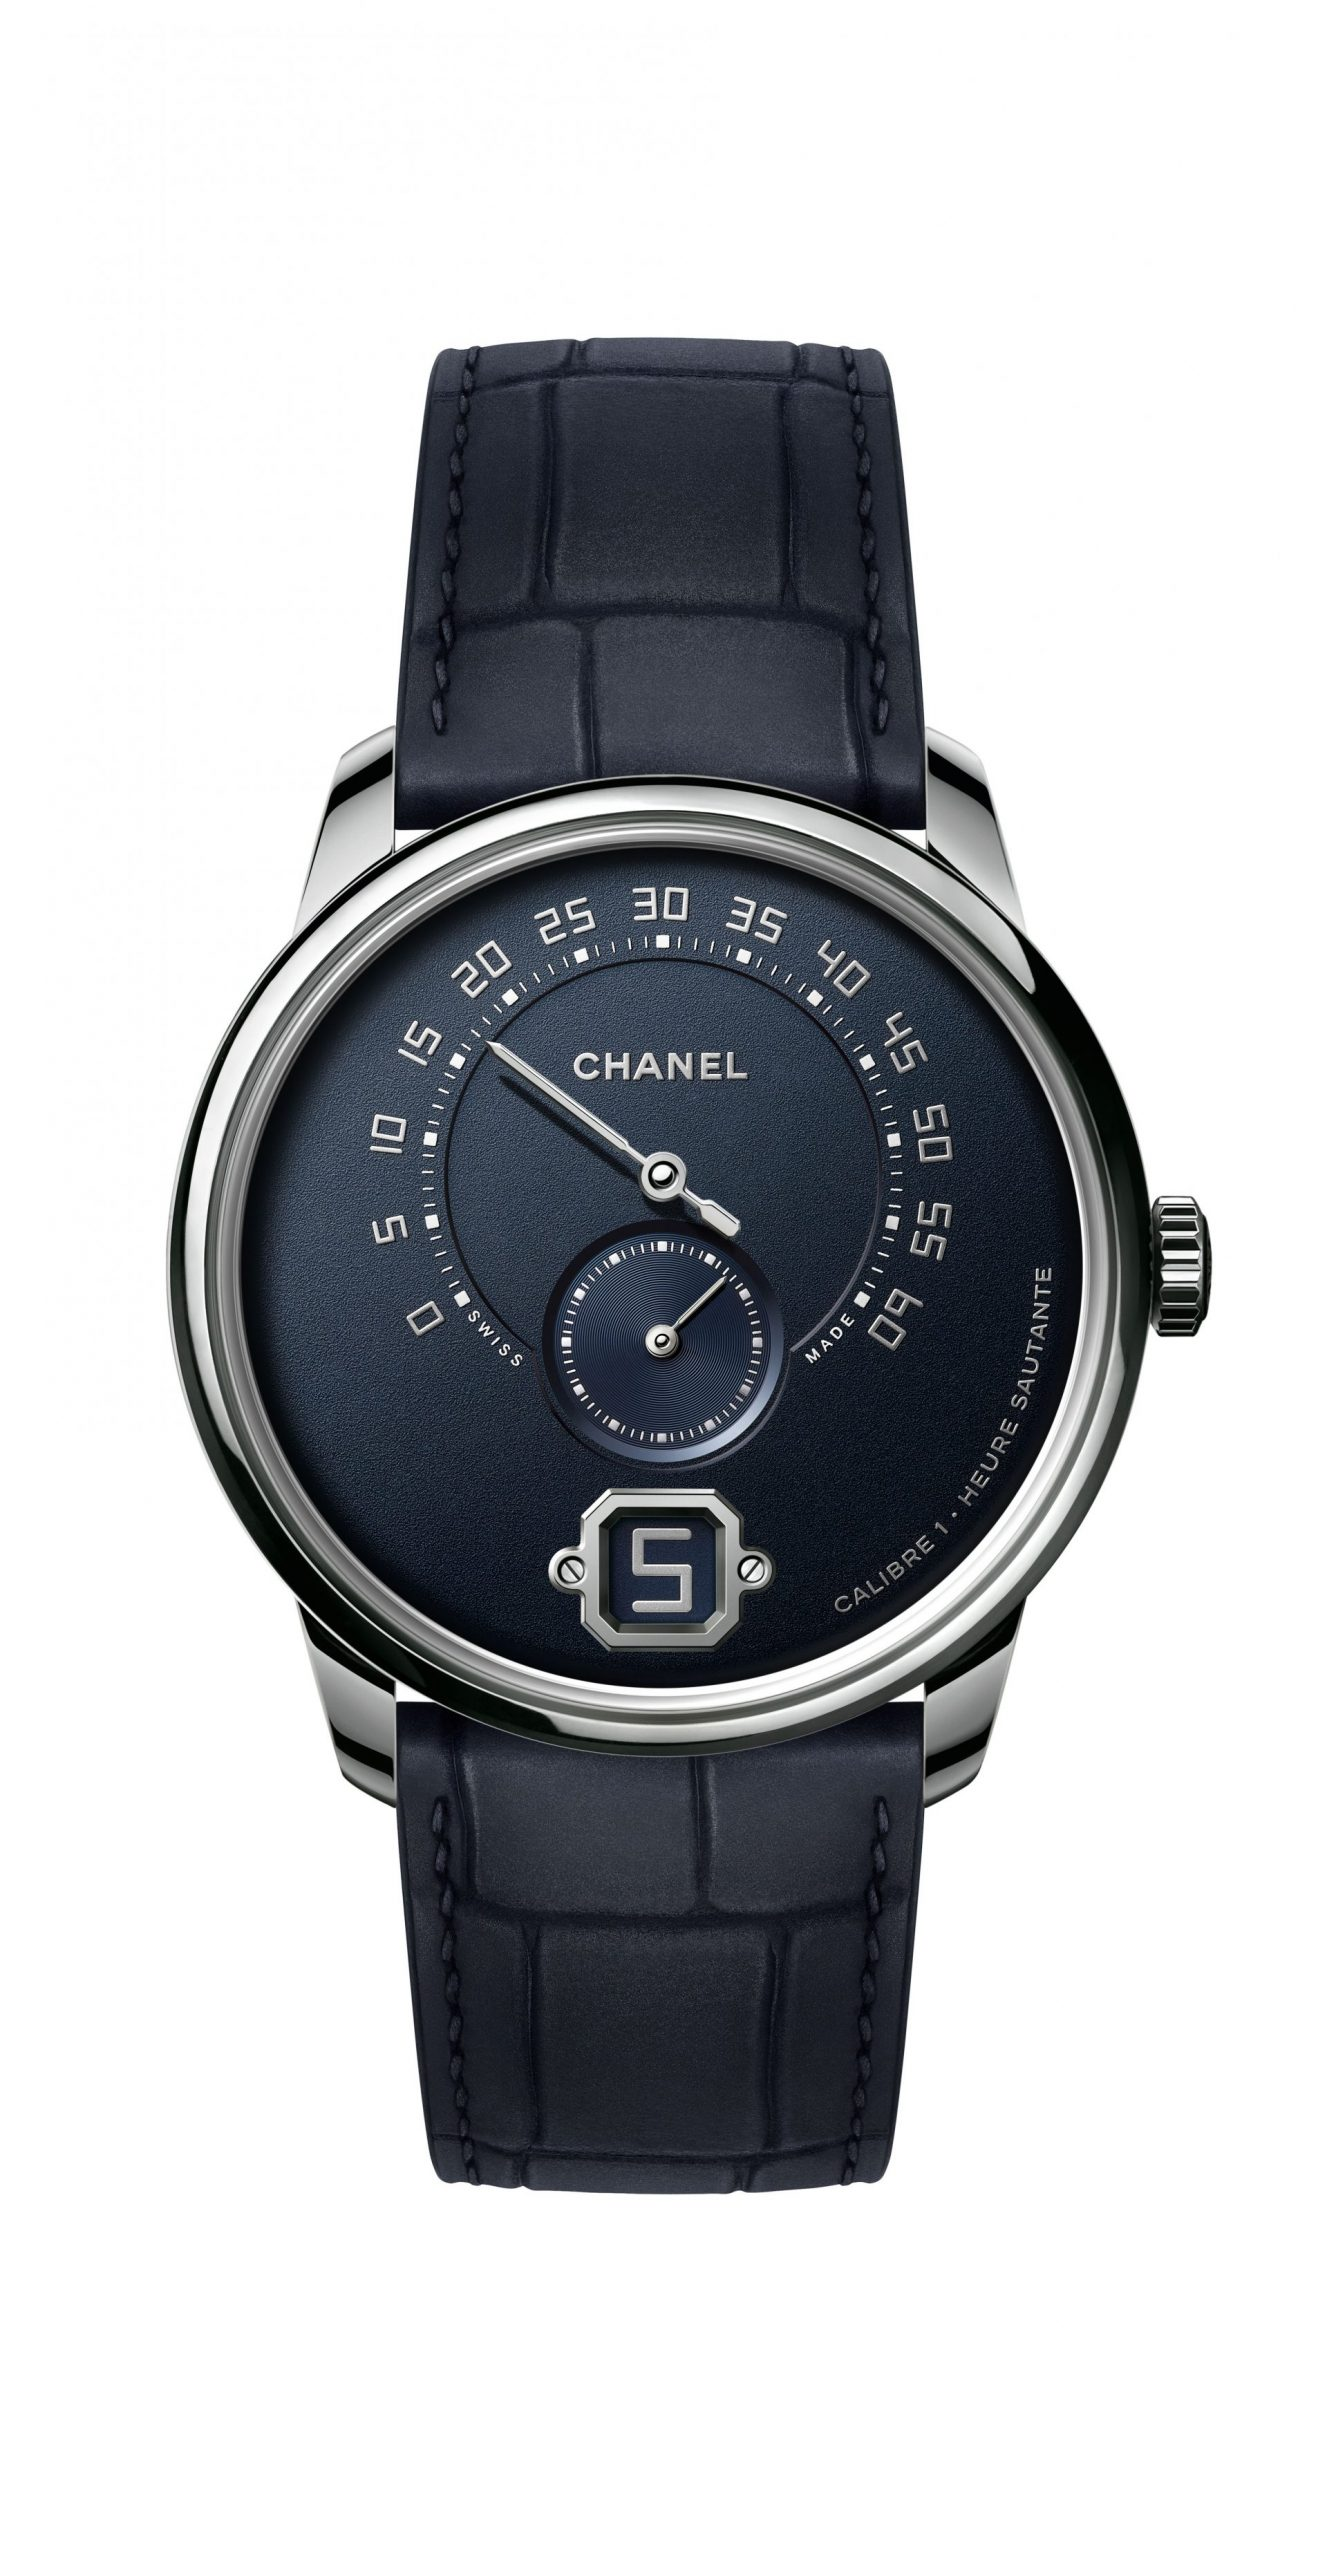 Chanel Monsieur de Chanel Blue von 2020